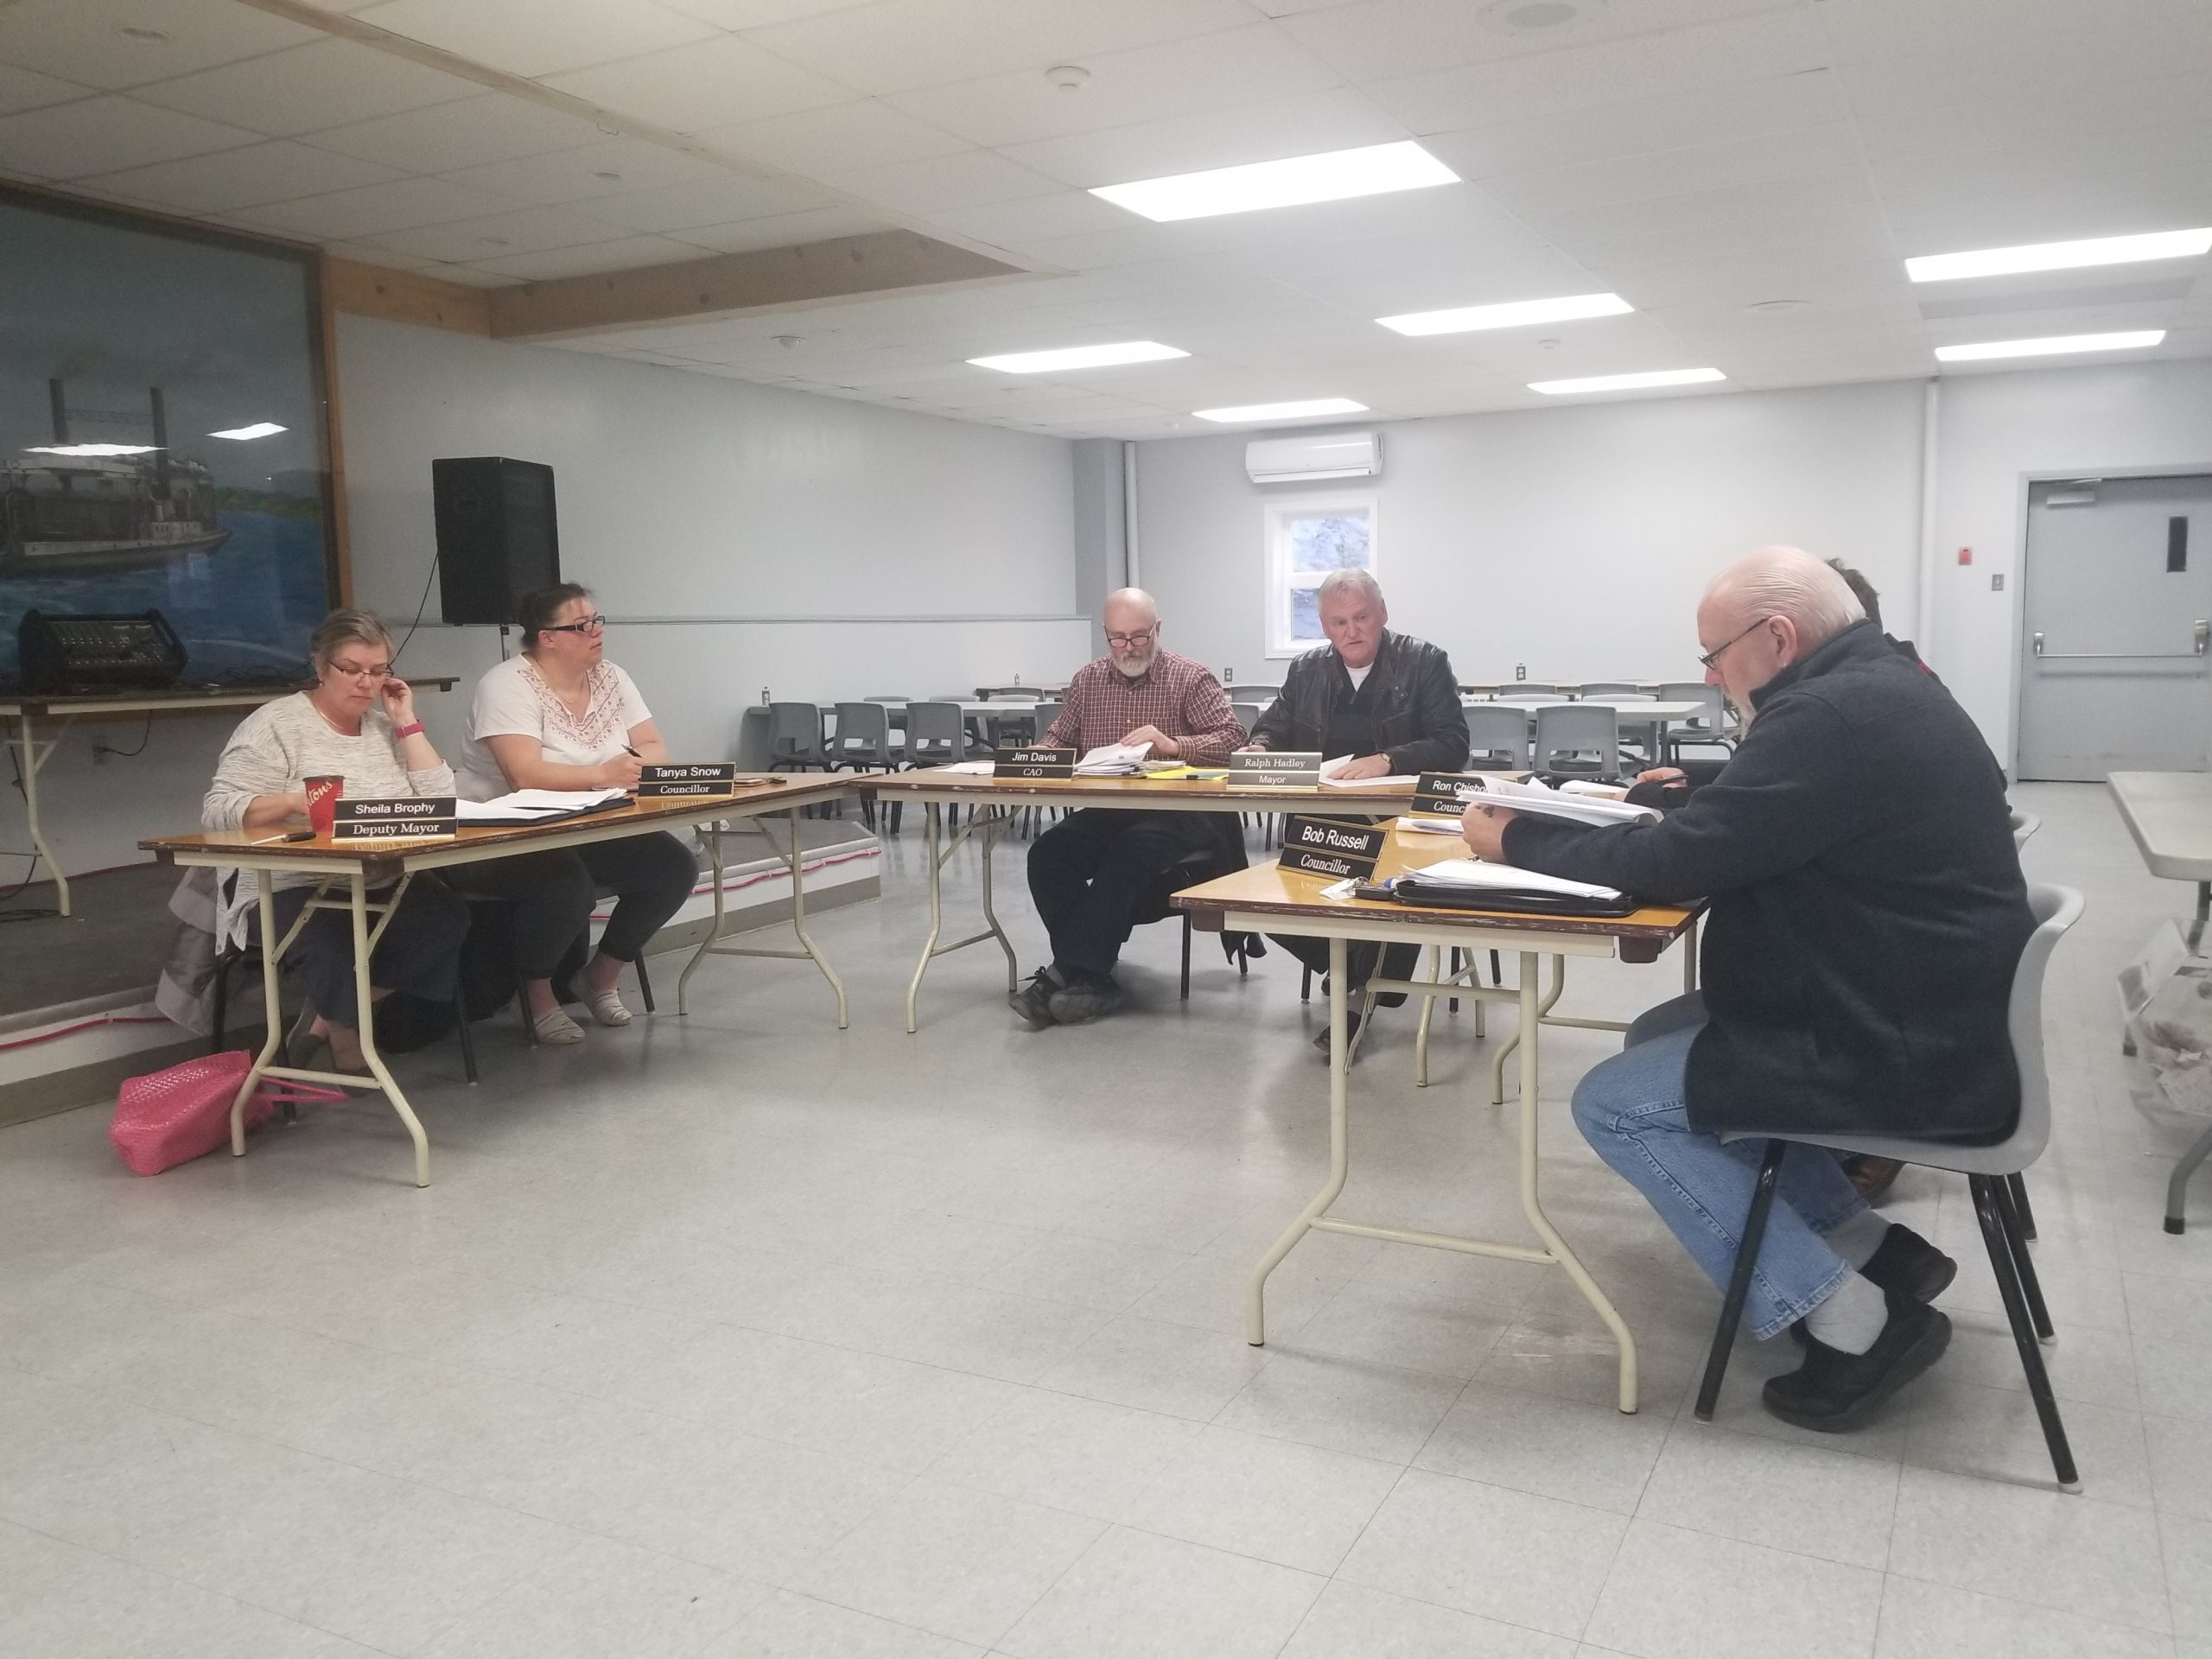 Mulgrave officials say they want provincial support for Rte. 344